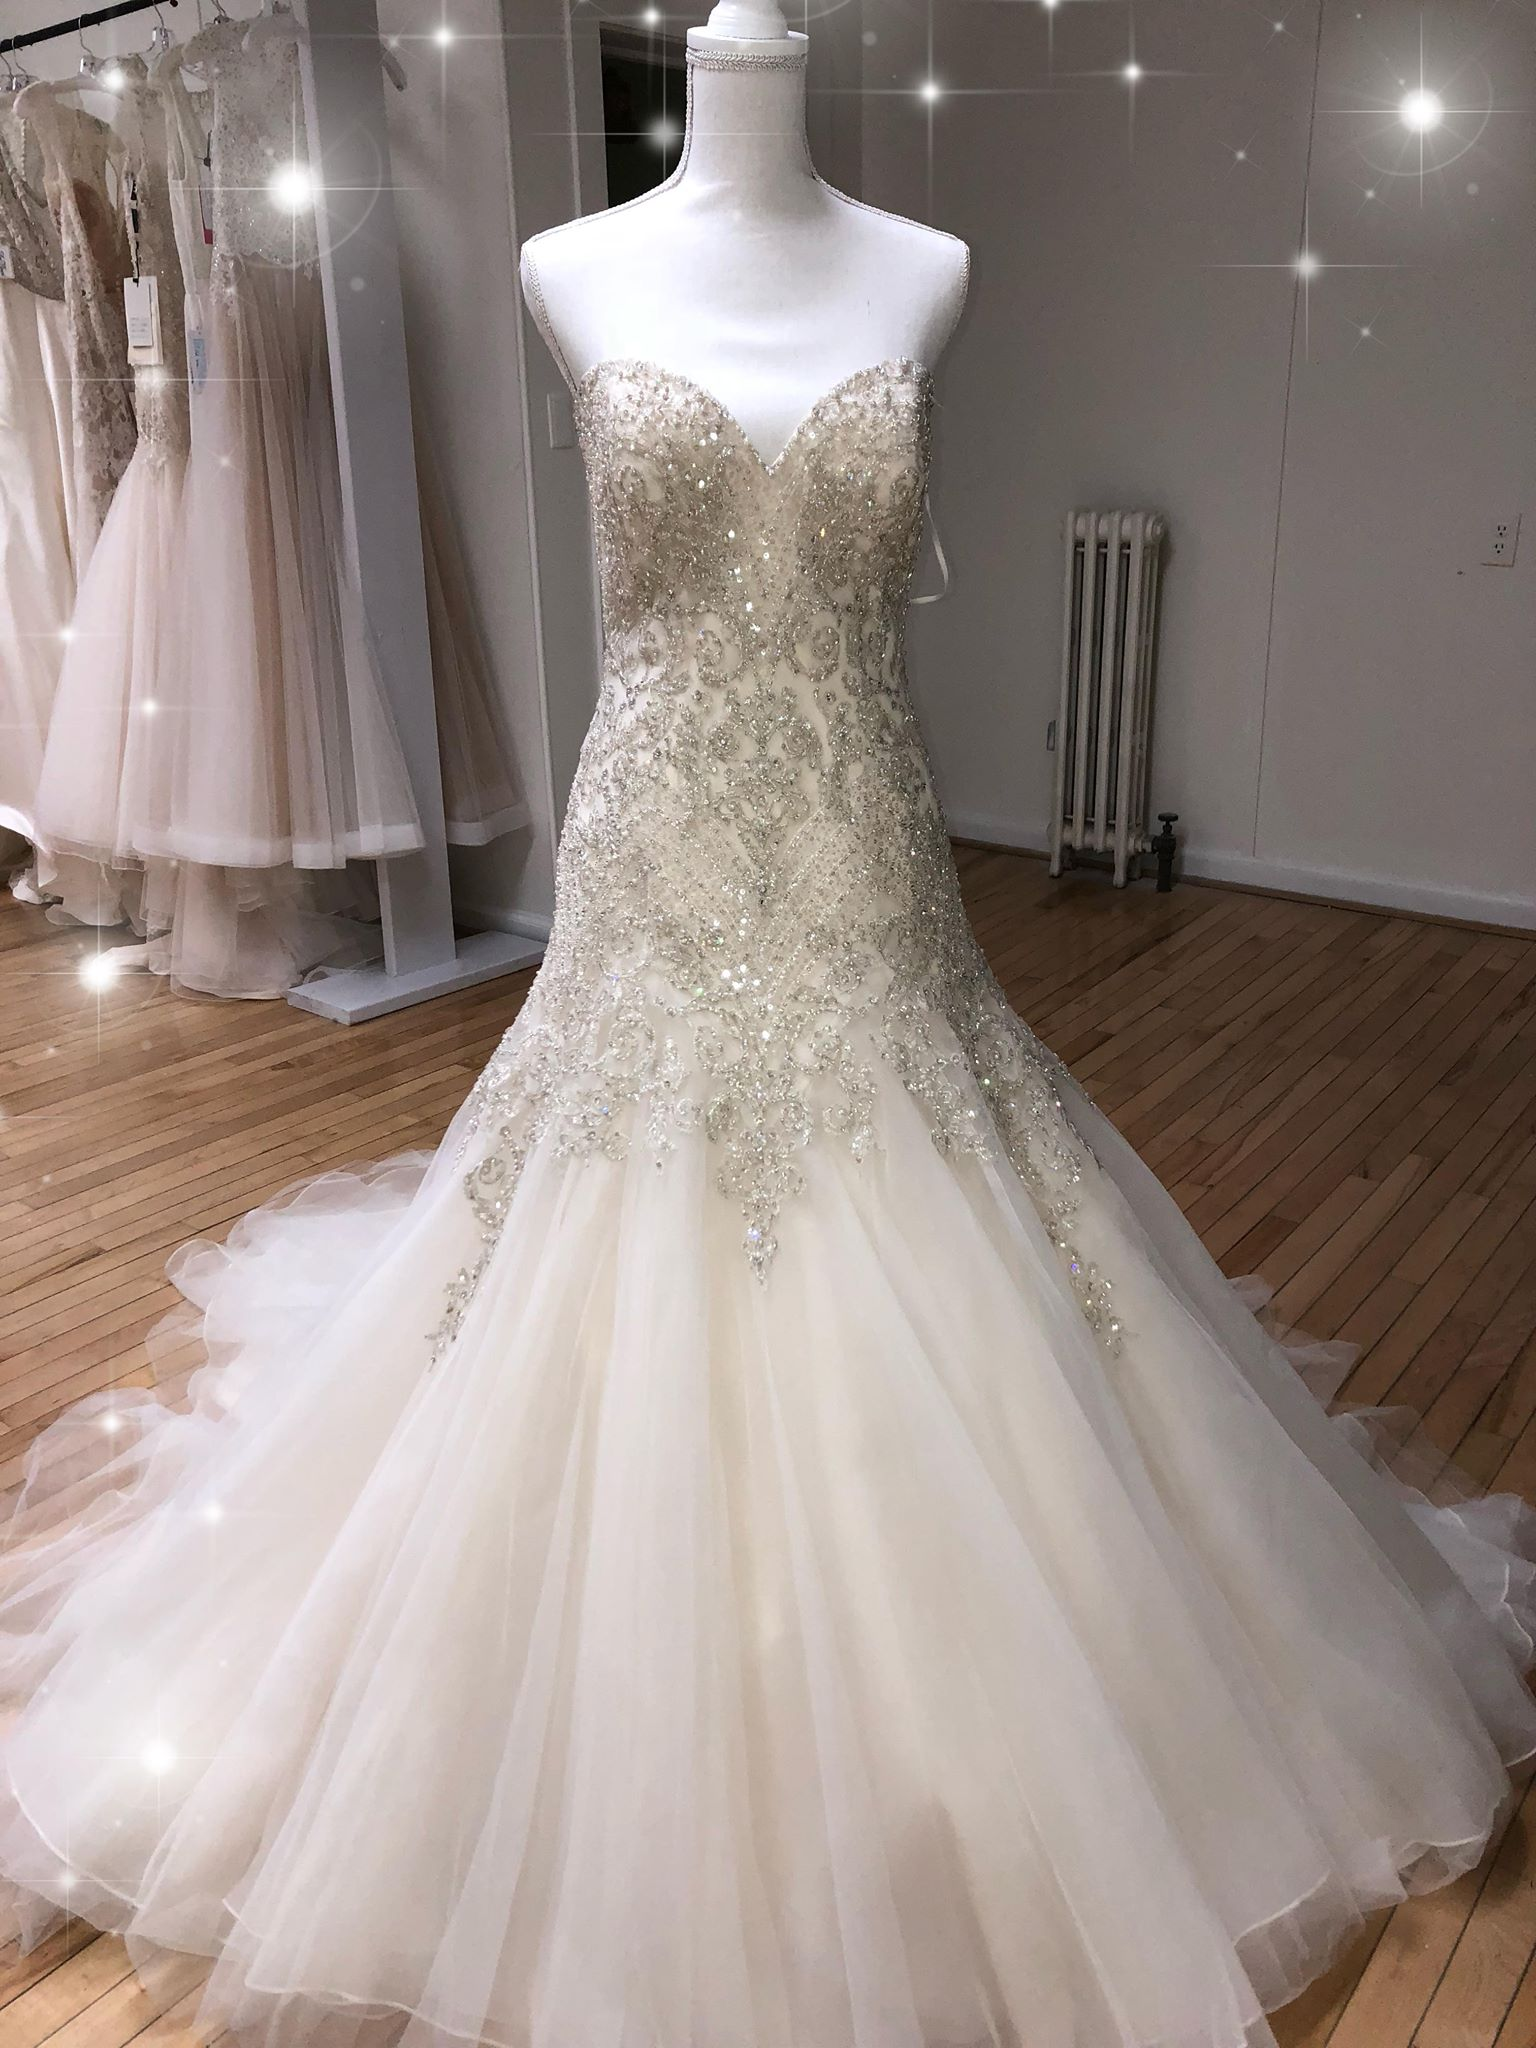 AmberSprott_WeddingGown.jpg